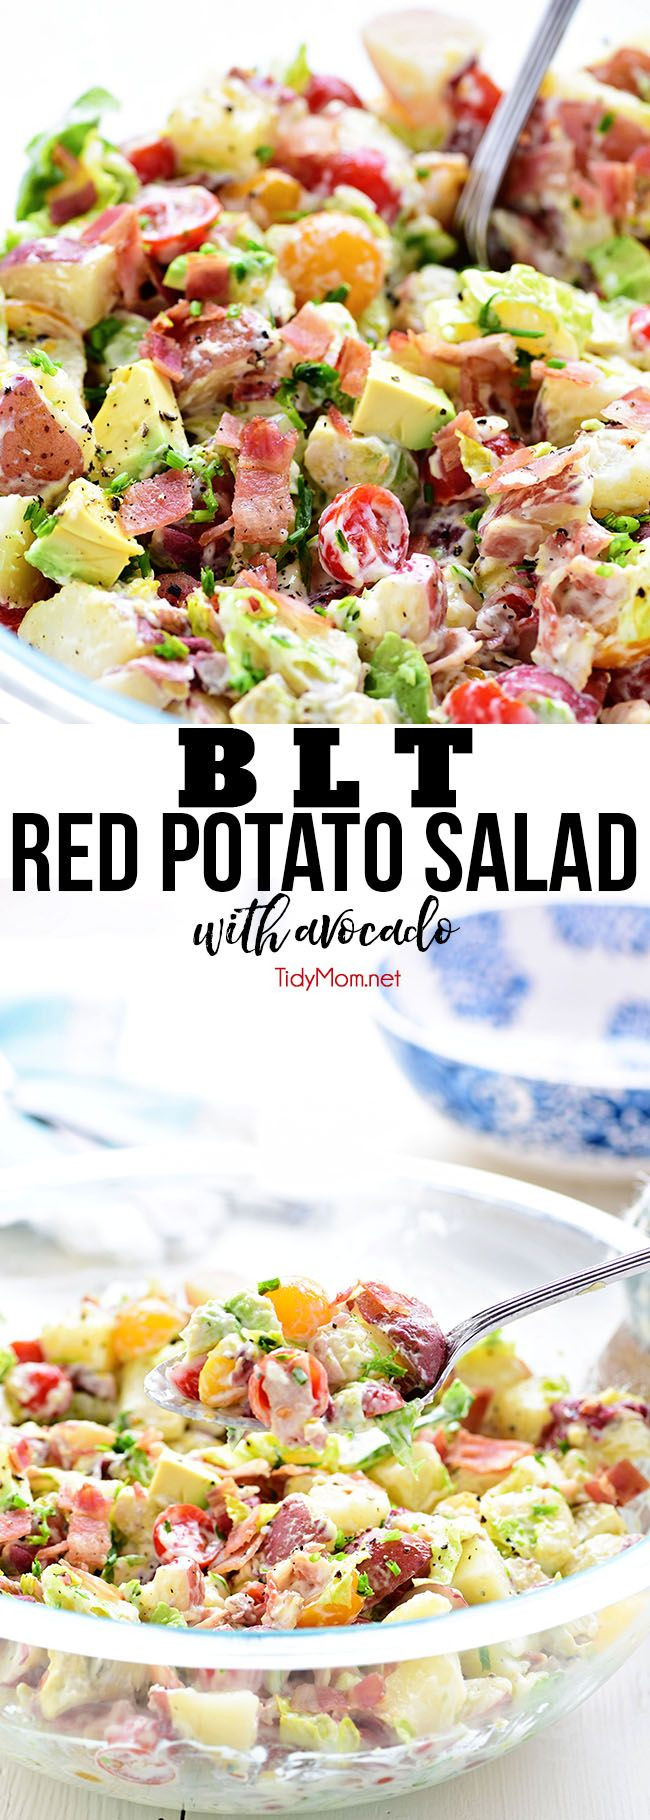 Summer Side Dishes For A Crowd  100 Red potato recipes on Pinterest